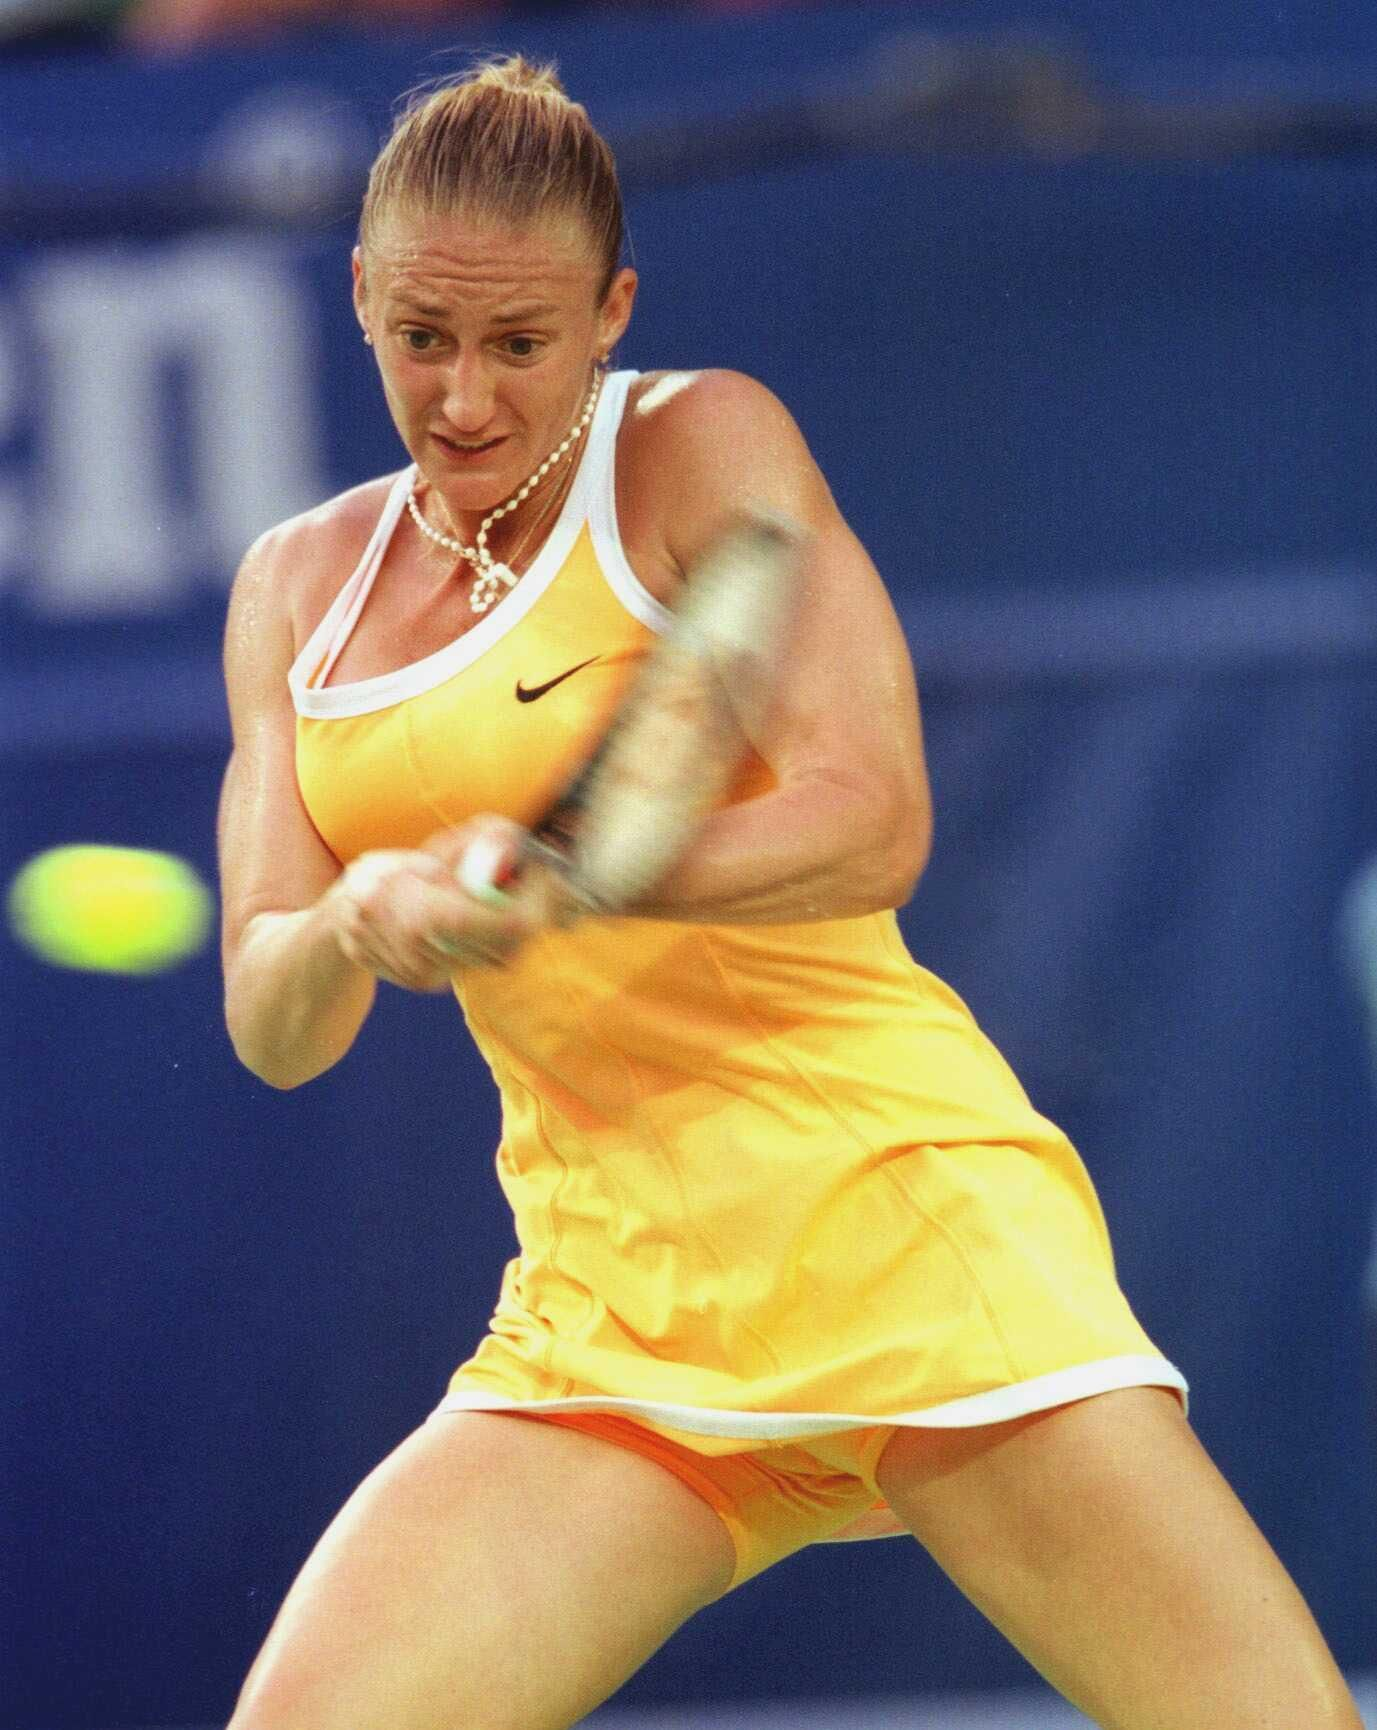 Real free gallery of Tennis upskirt